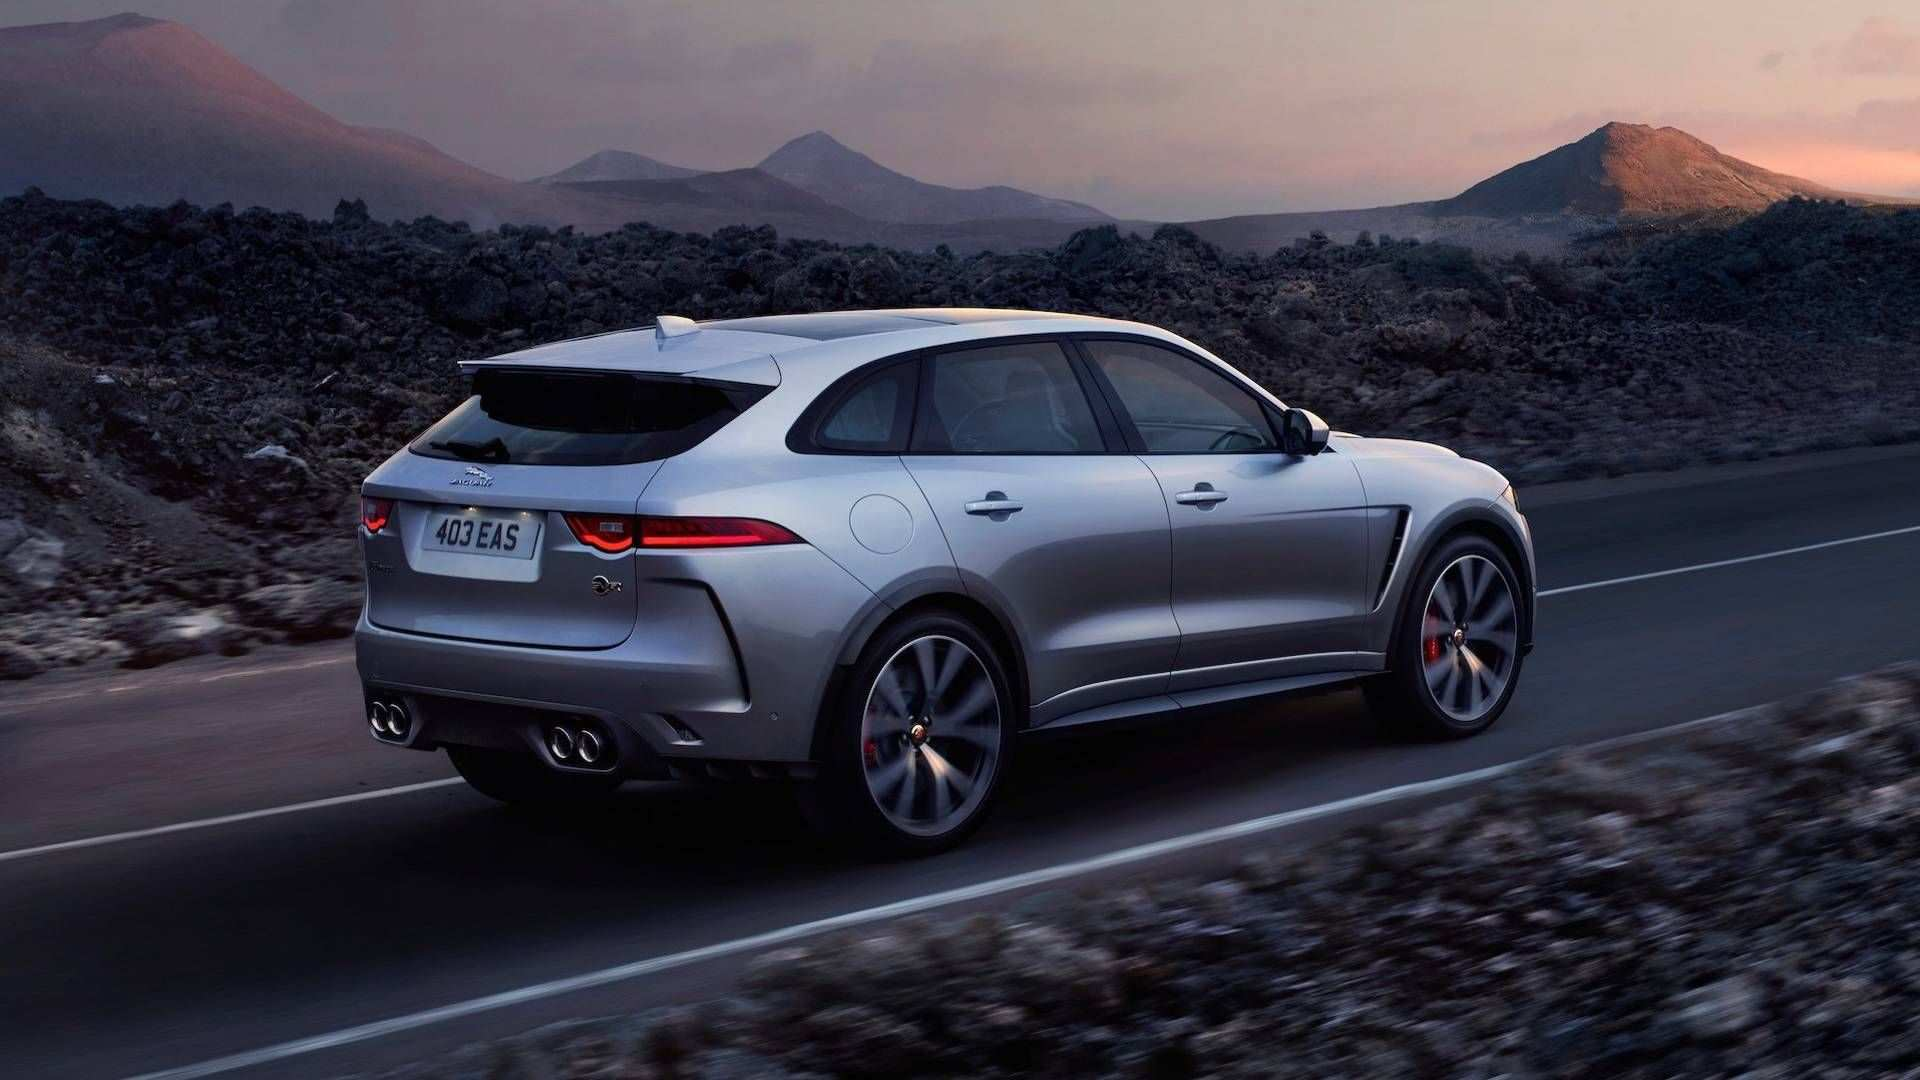 80 New The Jaguar F Type Facelift 2019 New Engine Concept with The Jaguar F Type Facelift 2019 New Engine